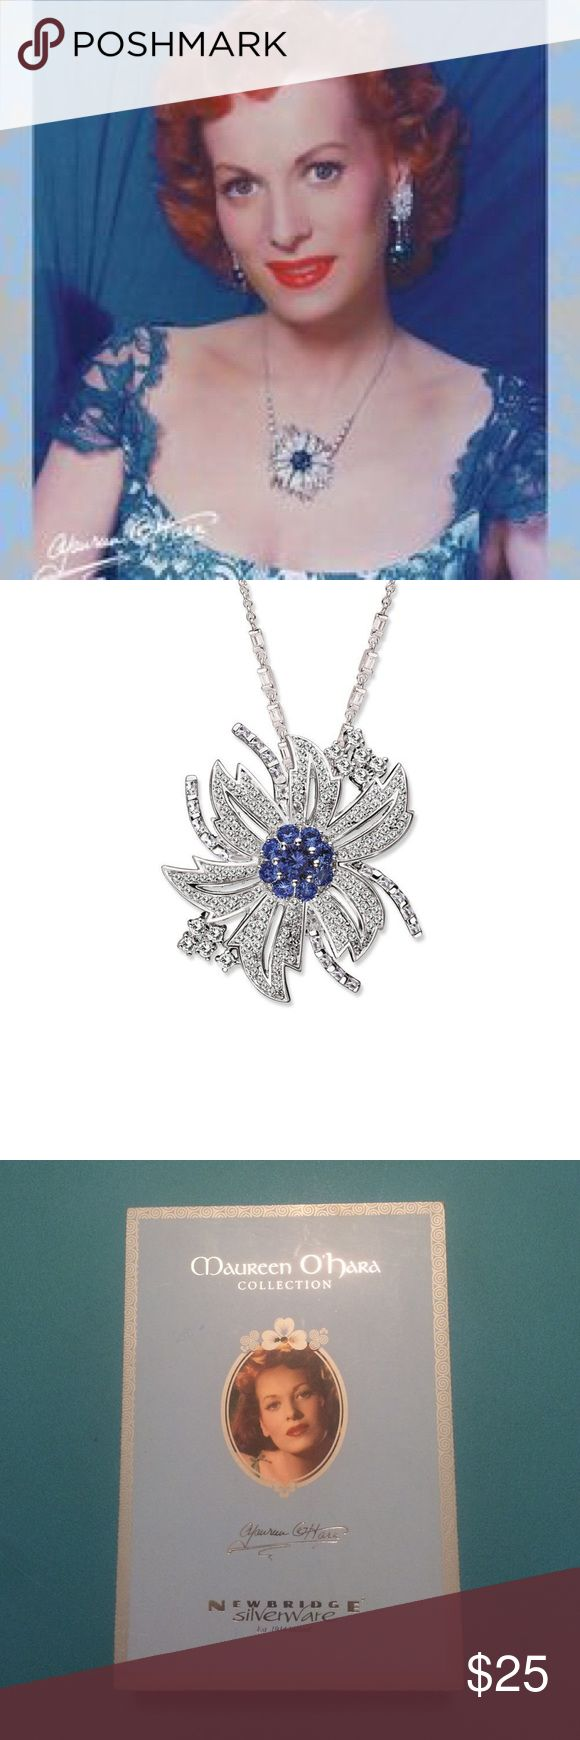 Sapphire Necklace By Maureen O'Hara Statement necklace originally designed by Maureen O'Hara for Newbridge Silverware. Cluster of sapphires surrounded by cubic zirconia presented in original box. Made in Ireland. Newbridge Silverware Jewelry Necklaces